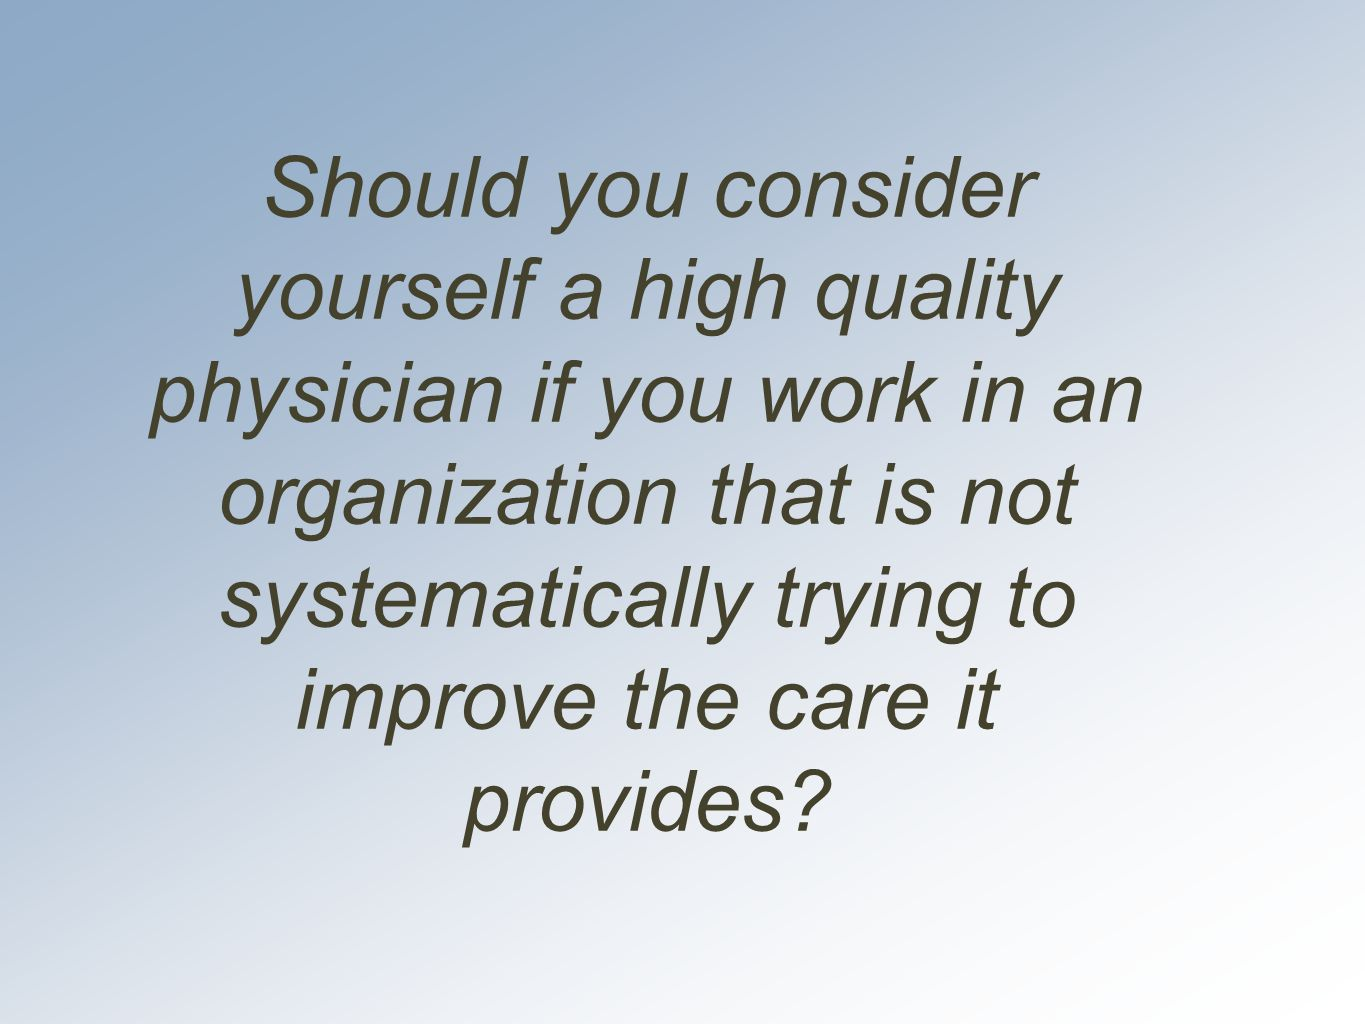 Should you consider yourself a high quality physician if you work in an organization that is not systematically trying to improve the care it provides